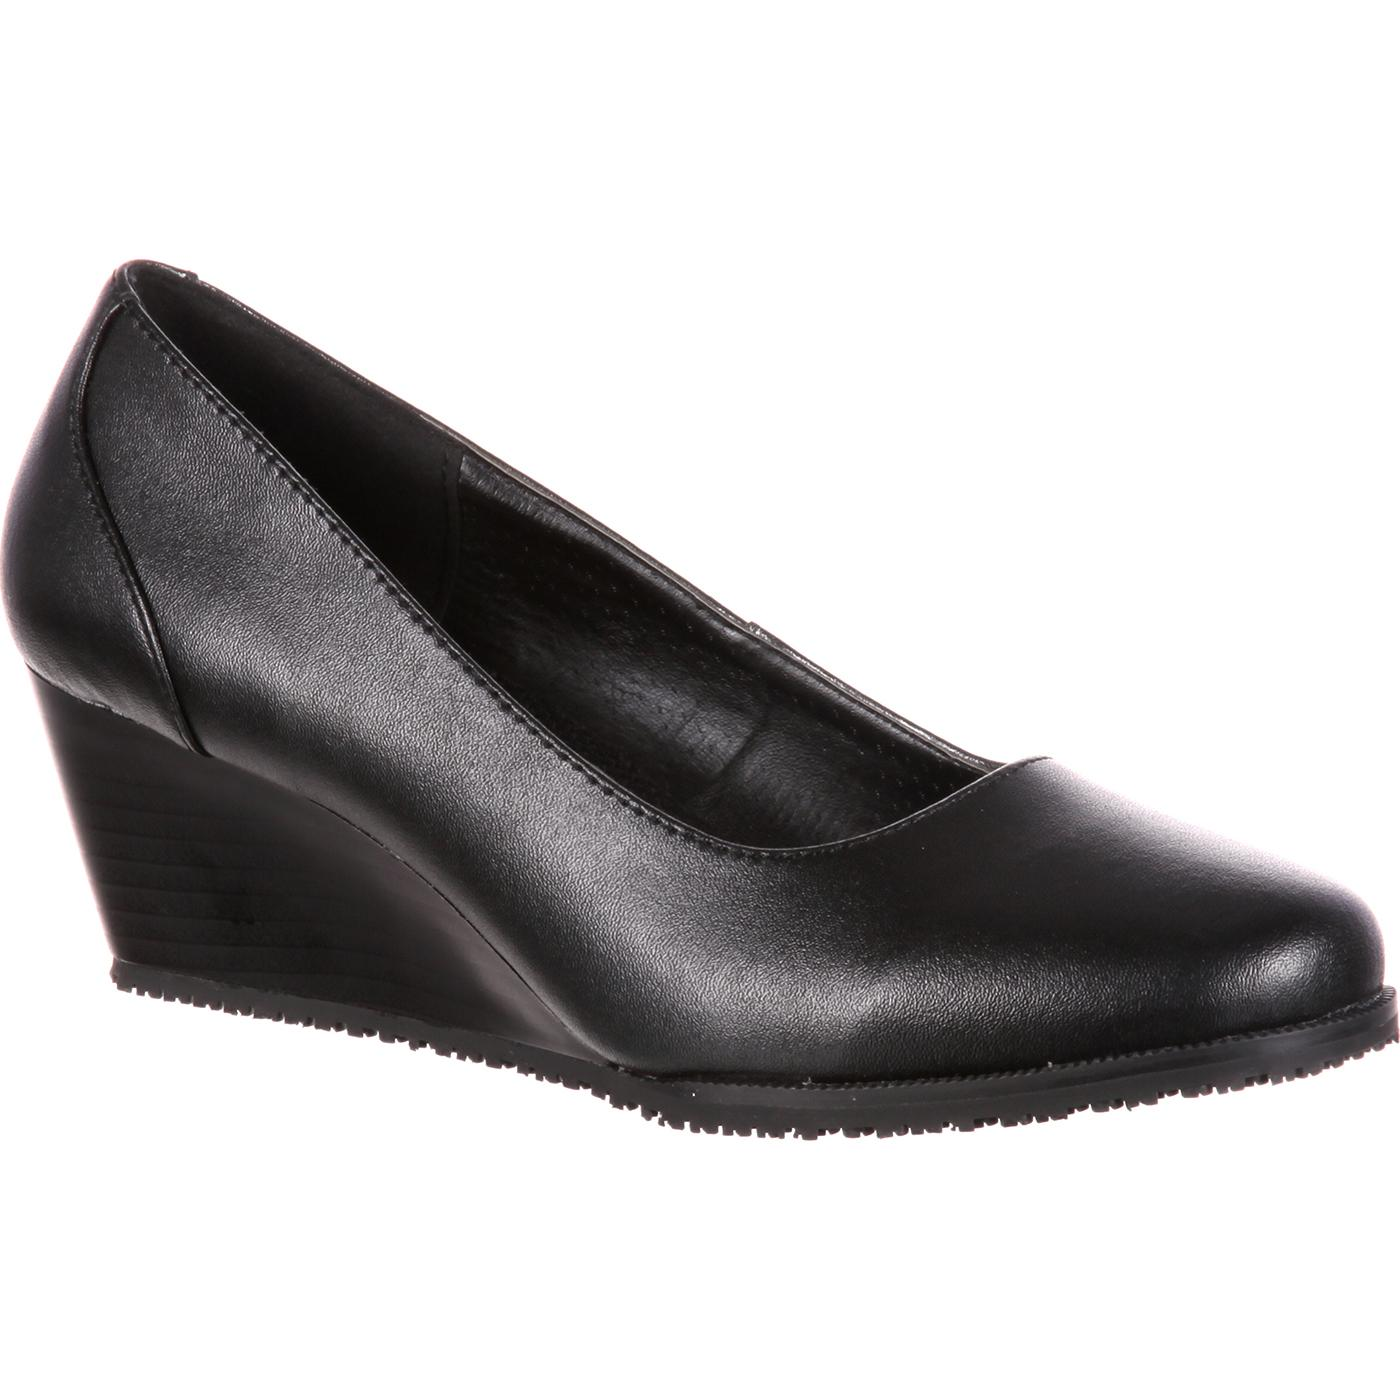 Buy black wedge dress shoes cheap,up to